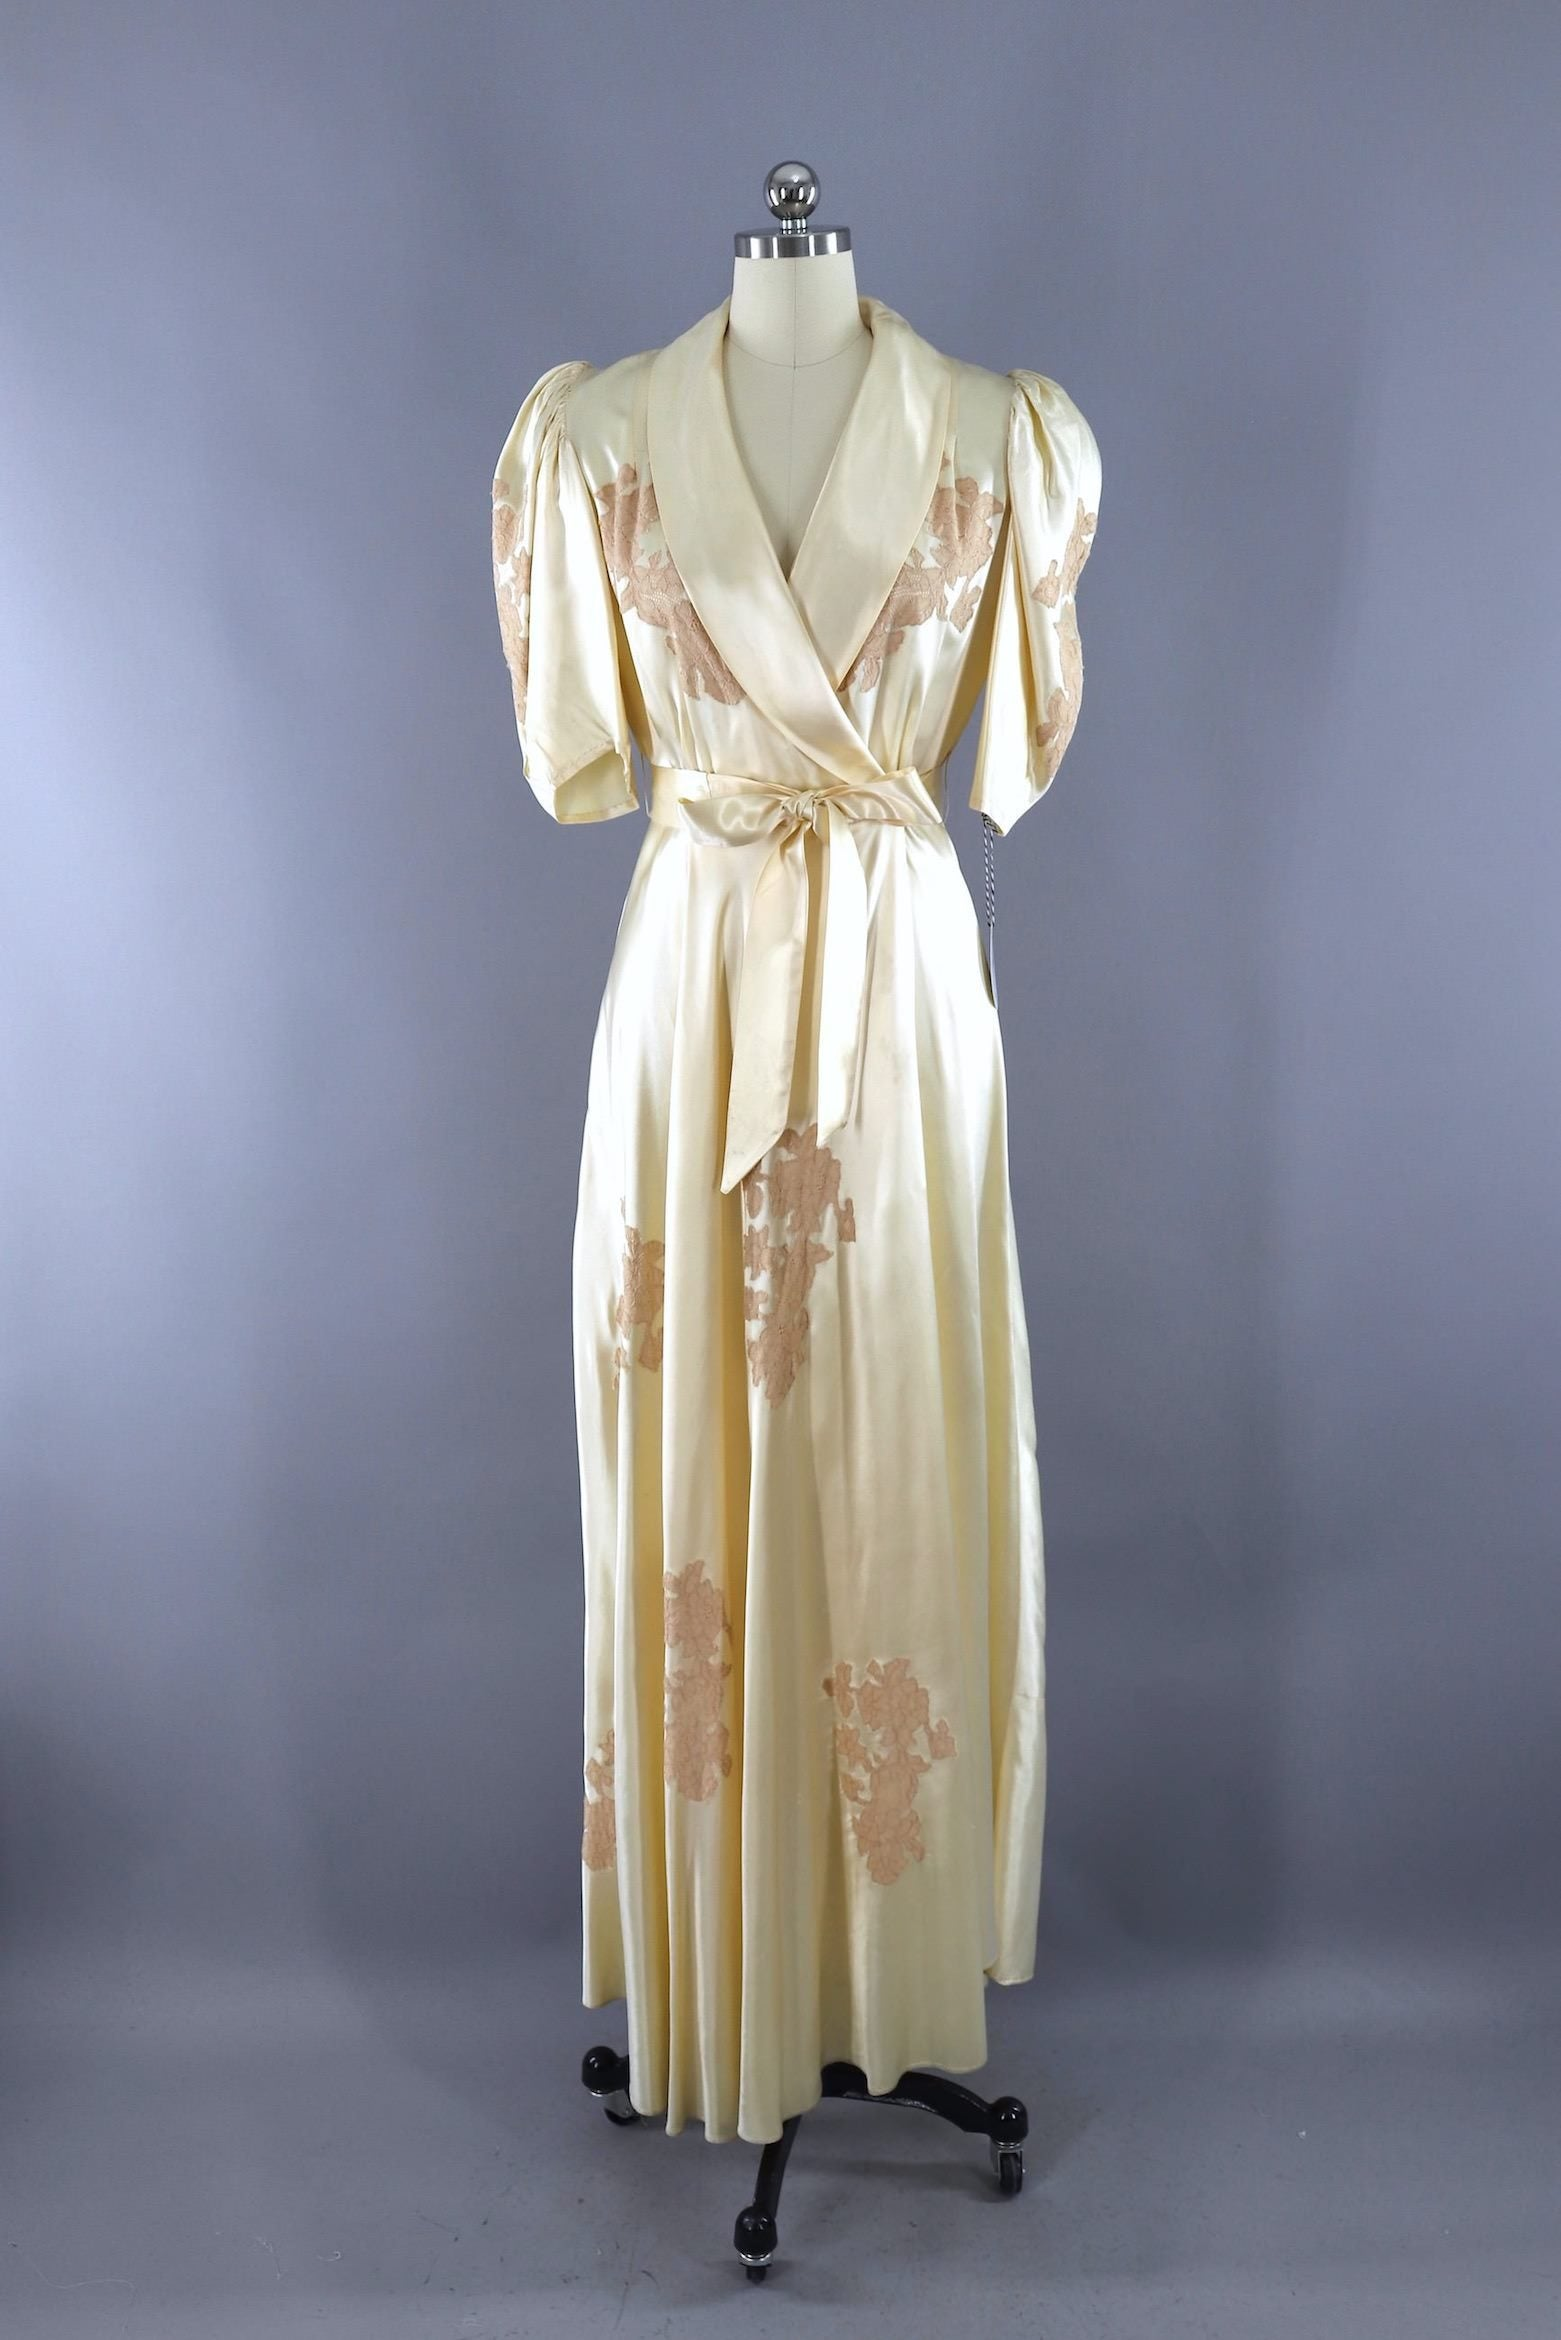 46e24e8aa5 Vintage 1930s Satin and Lace Bias Cut Dressing Gown Robe